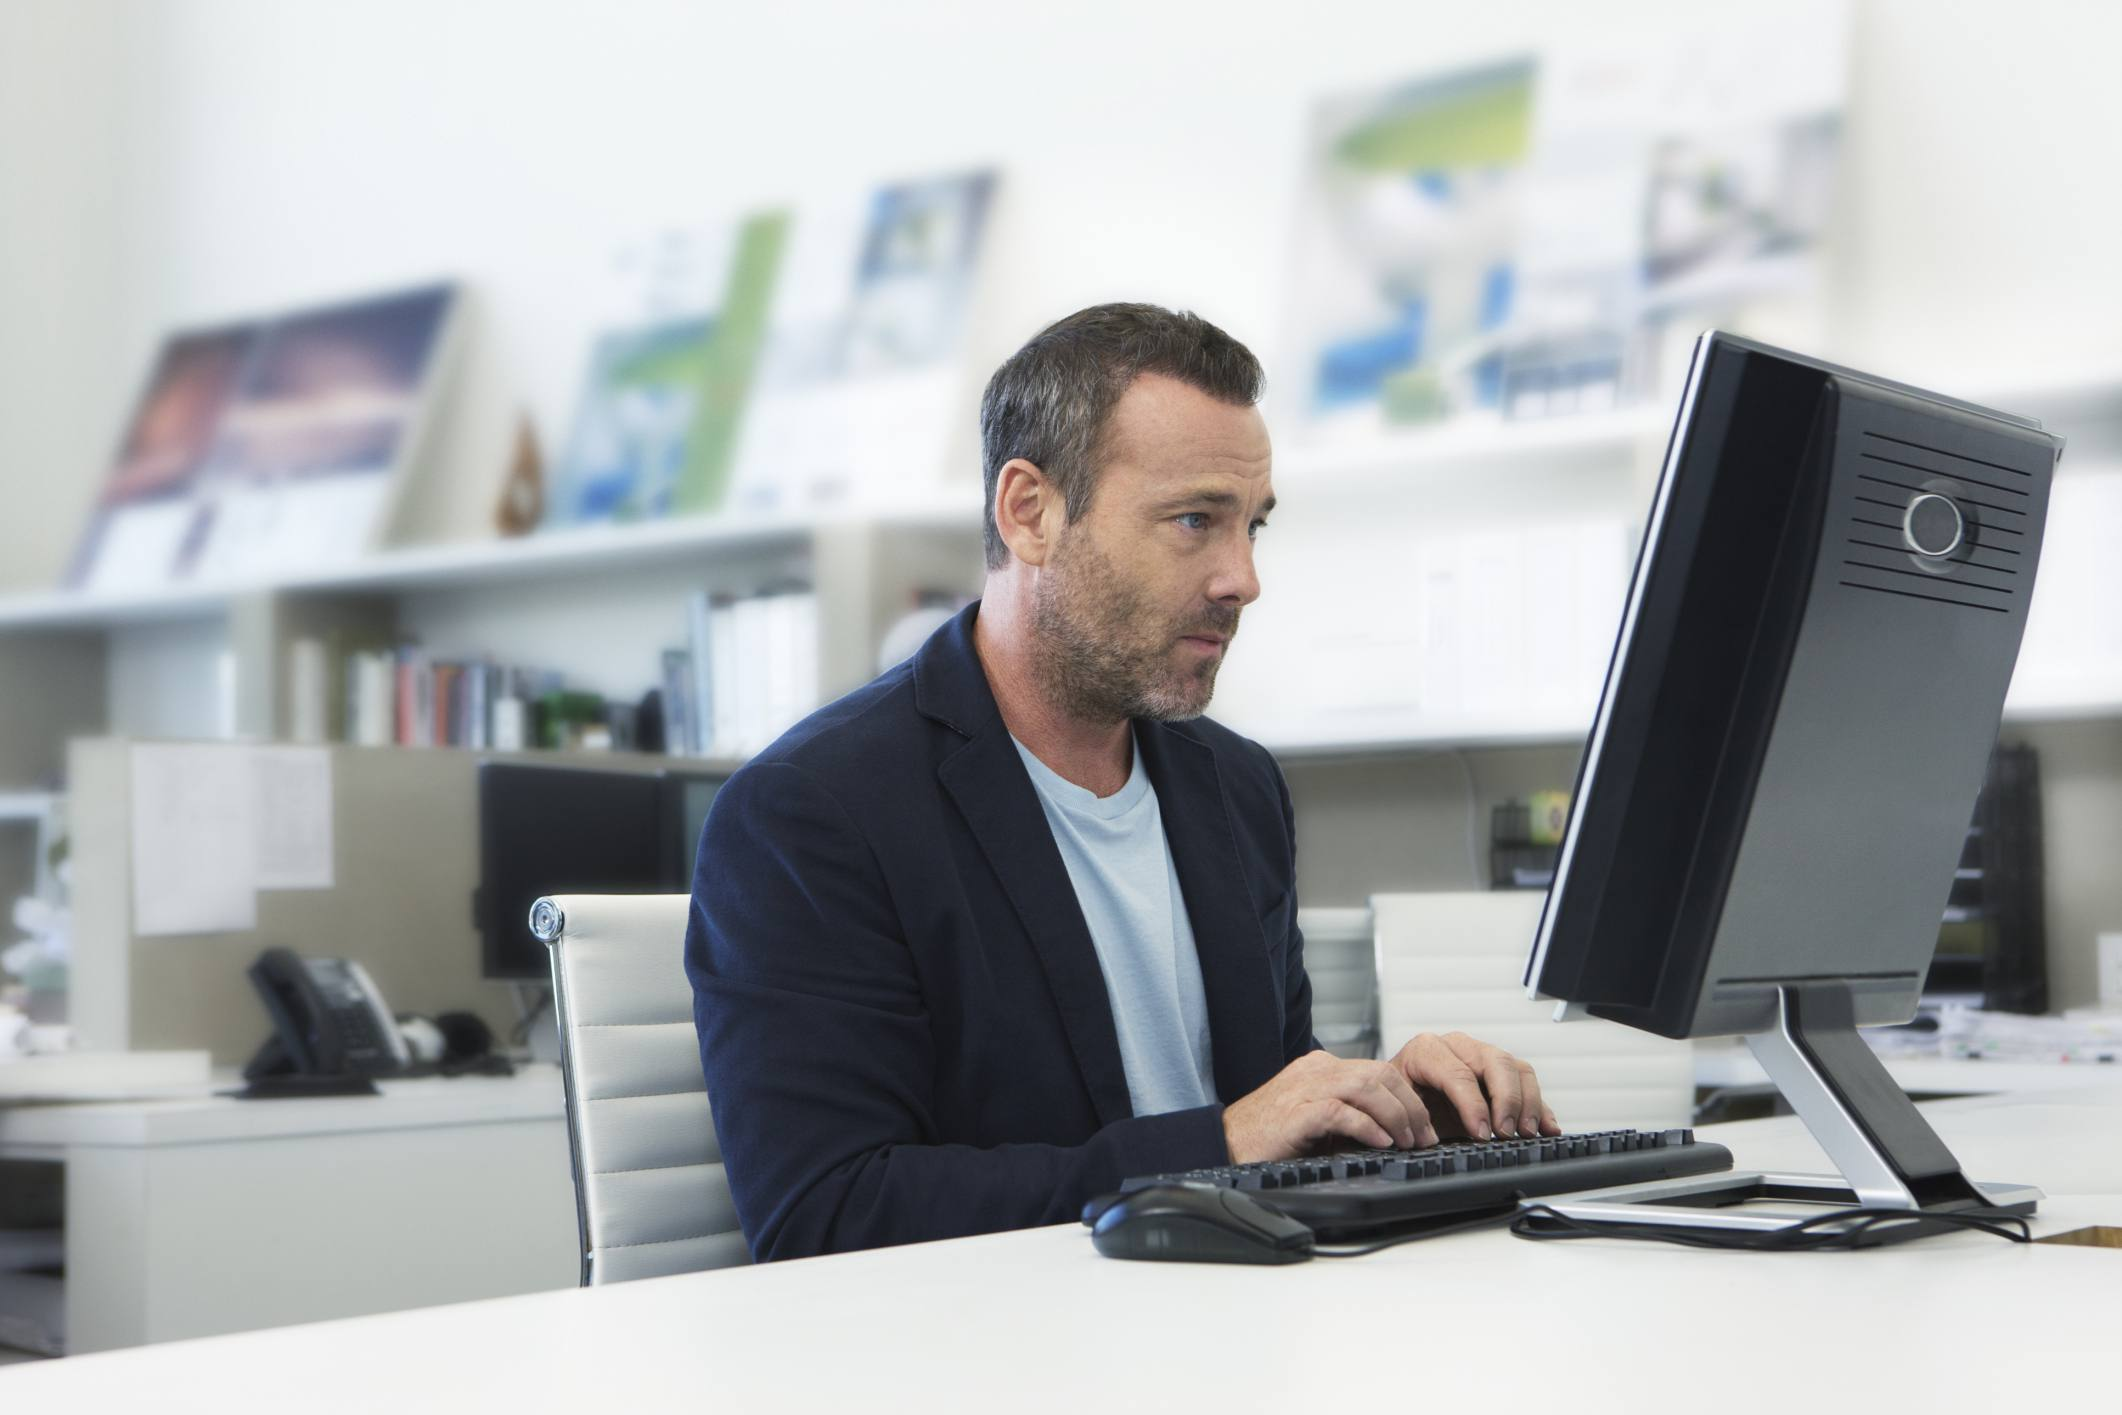 Worker updating software on computer